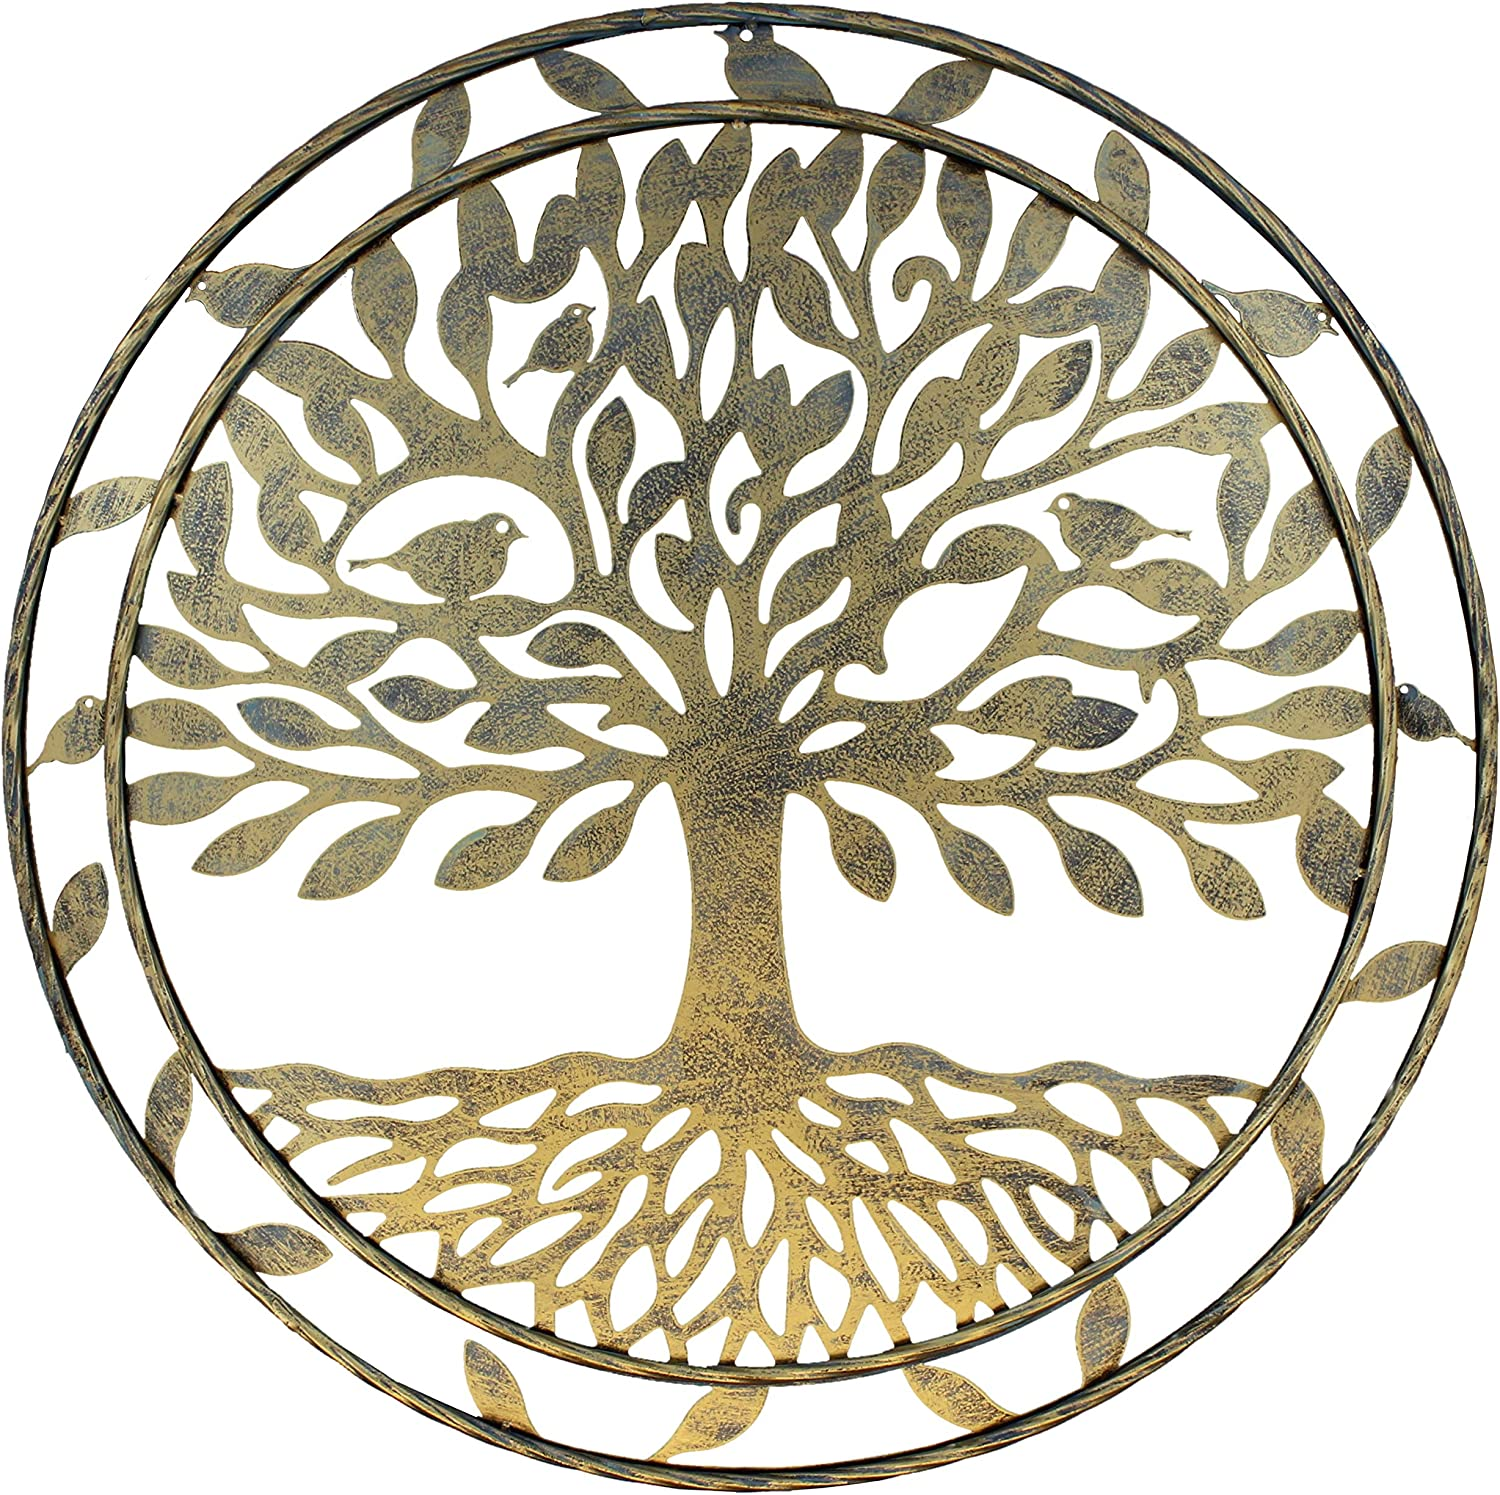 "Old River Outdoors Large Metal Tree of Life Wall Decor Art - 23 1/2"" Rustic Plaque"